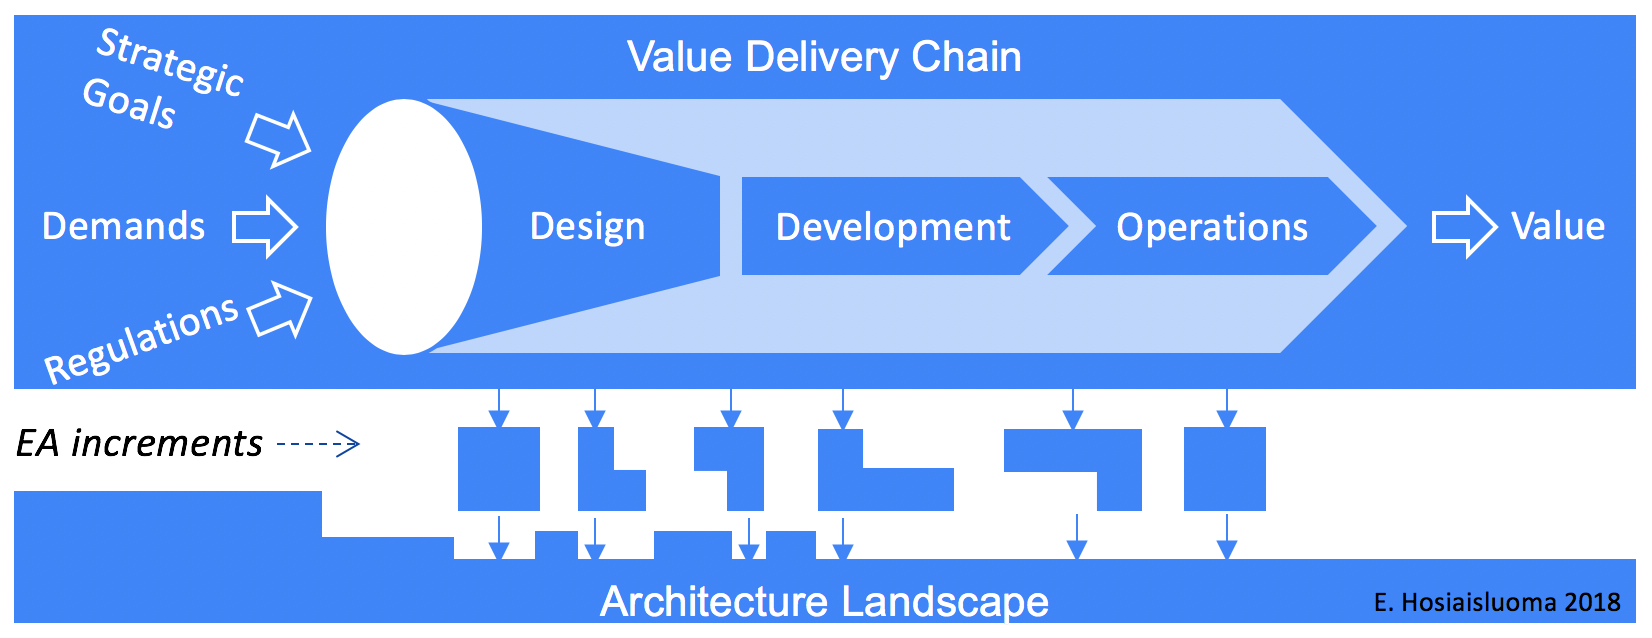 Lean Enterprise Architecture Method For Value Chain Based